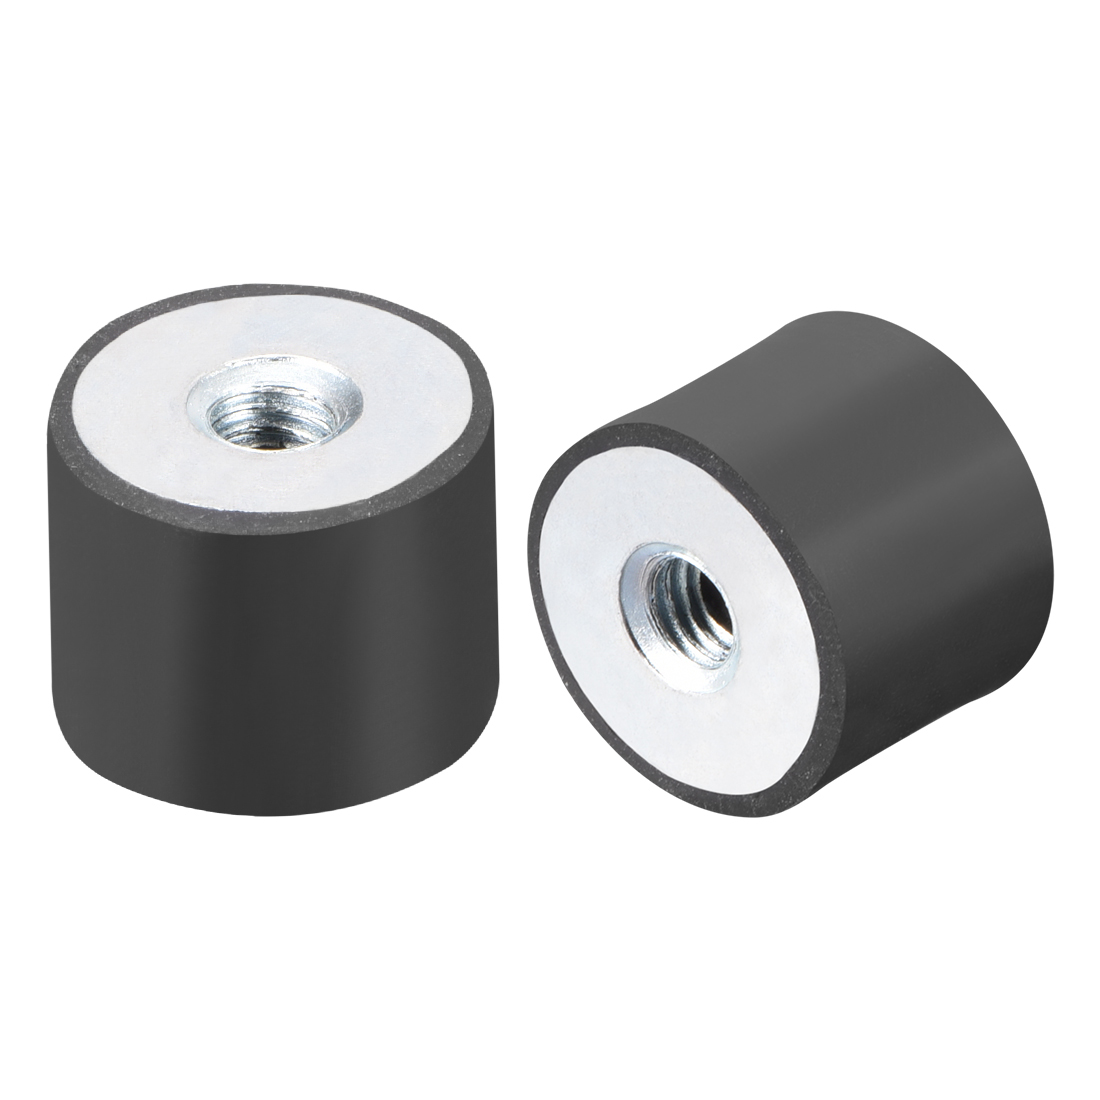 Uxcell M4 M5 M6 Thread Female Rubber Mounts,Silentblock Base Block For Air Compressors And Fitness Equipment